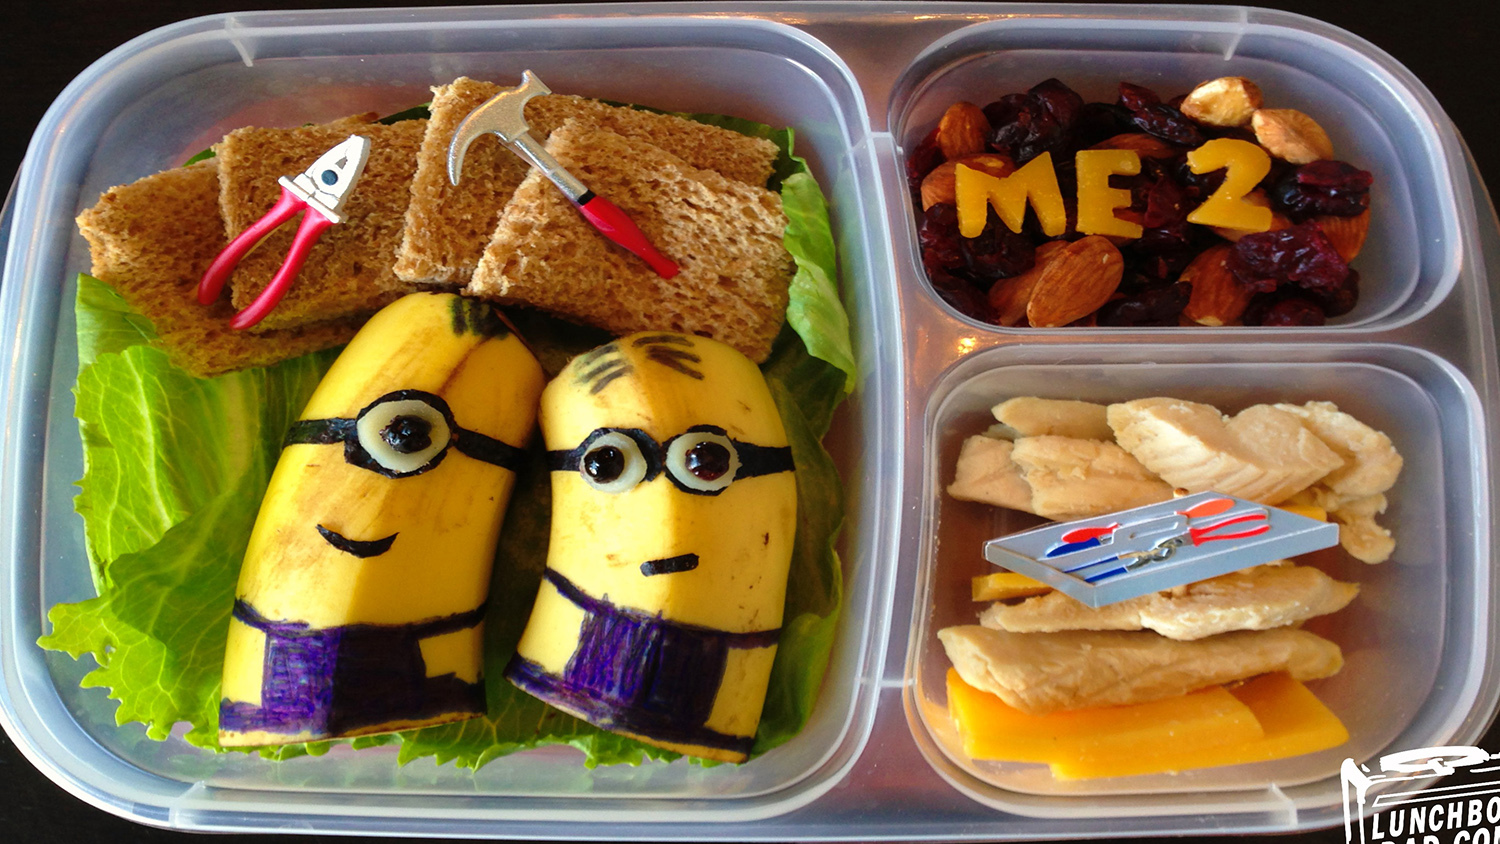 The Lunchbox Dad rules—see his creative designs!